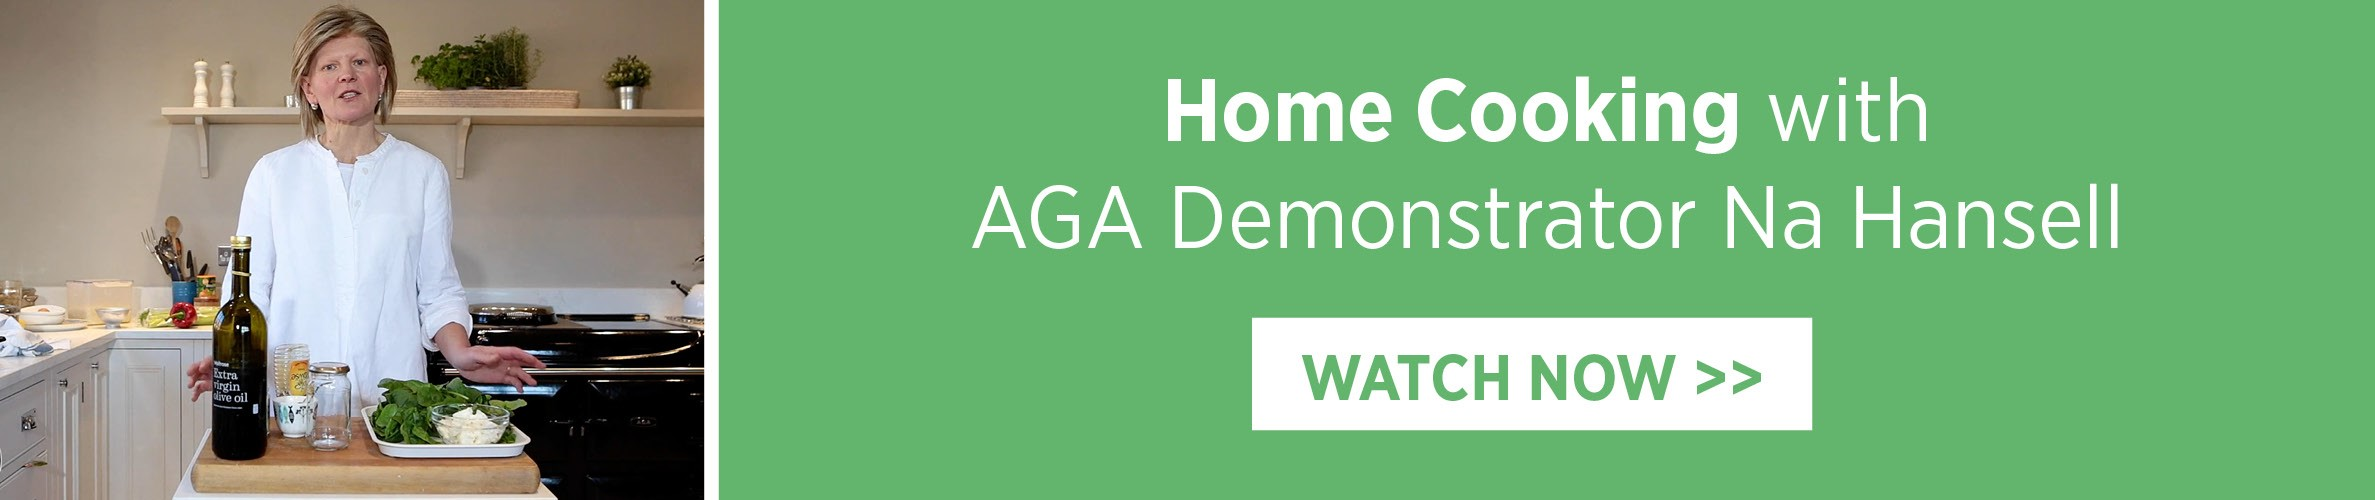 Home Cooking with AGA Demonstrator Na Hansell